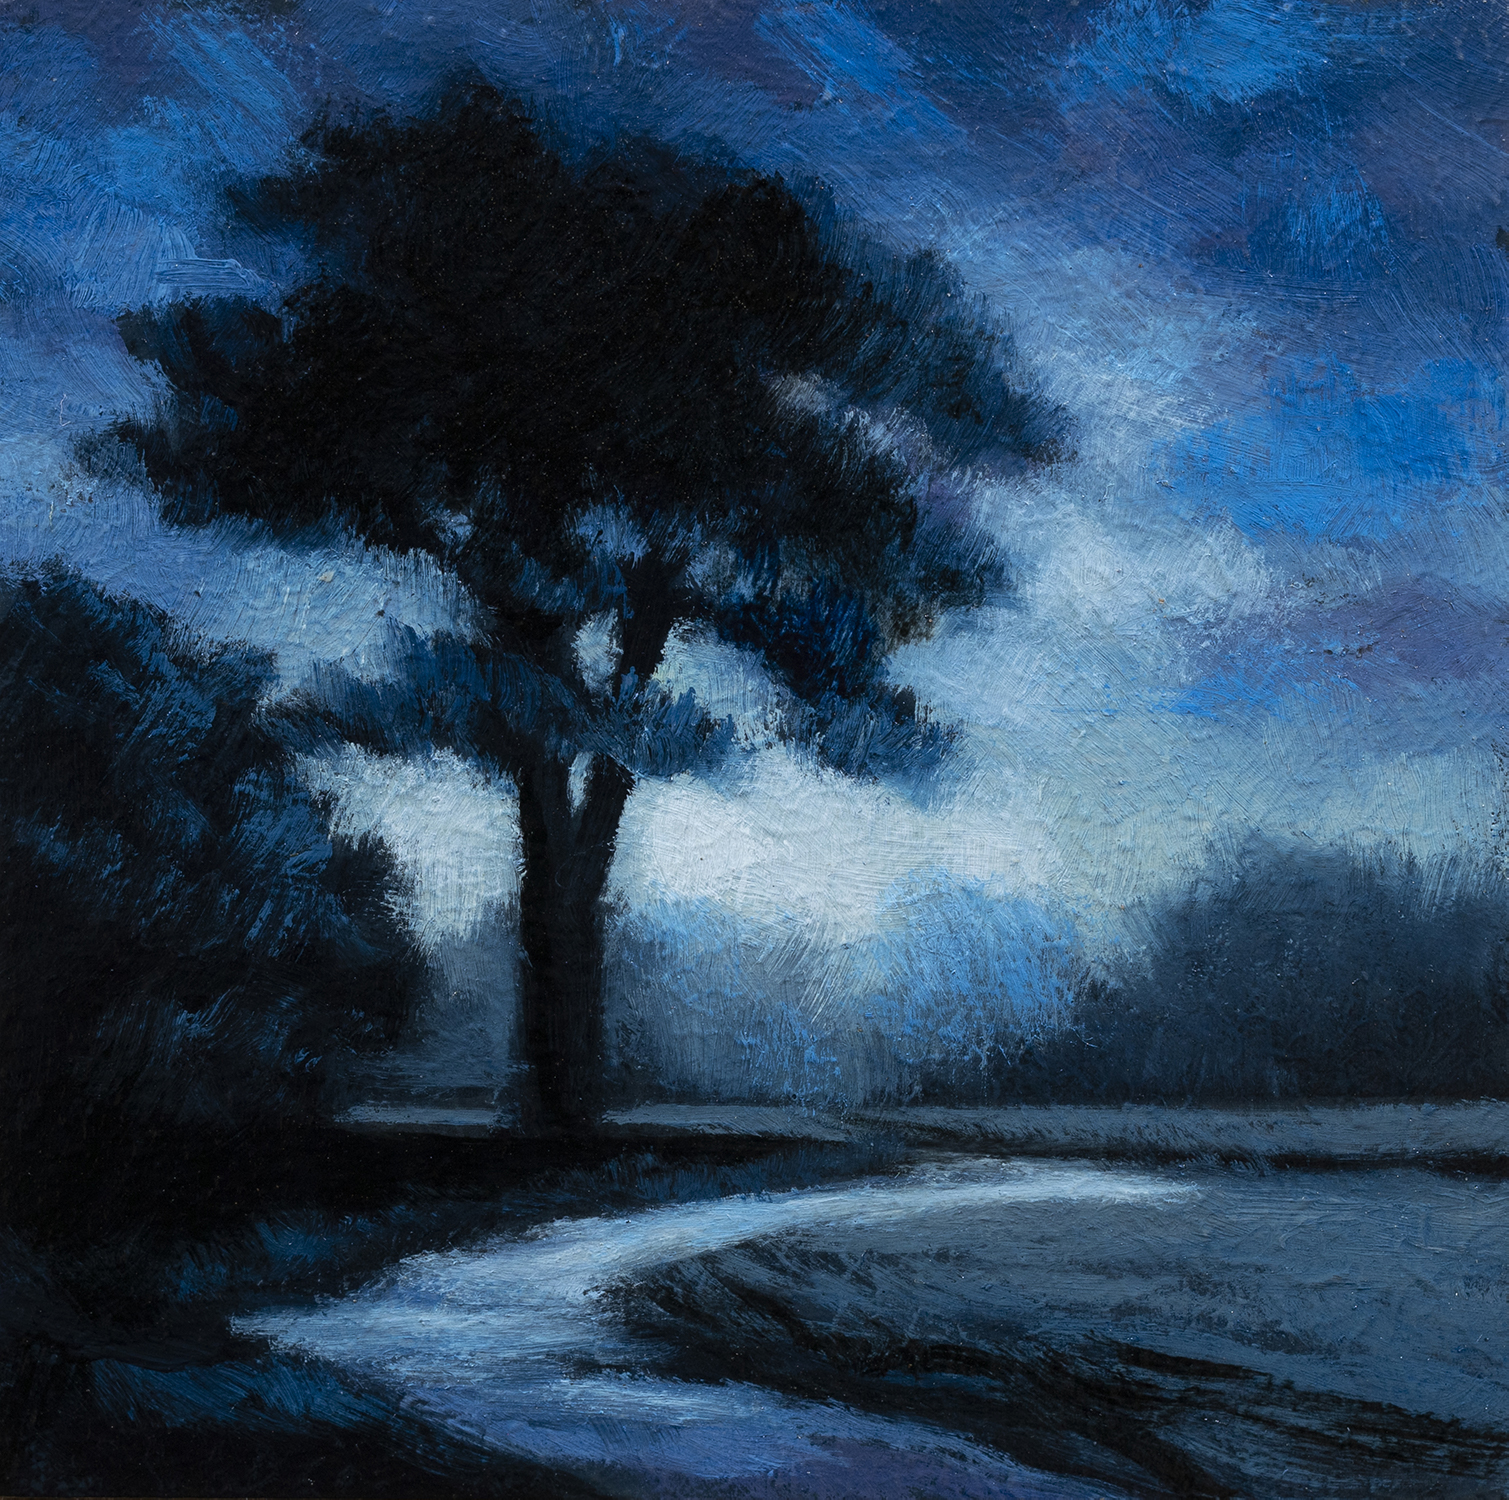 Blue Nocturne by M Francis McCarthy - 3½x3½ Oil on Wood Panel